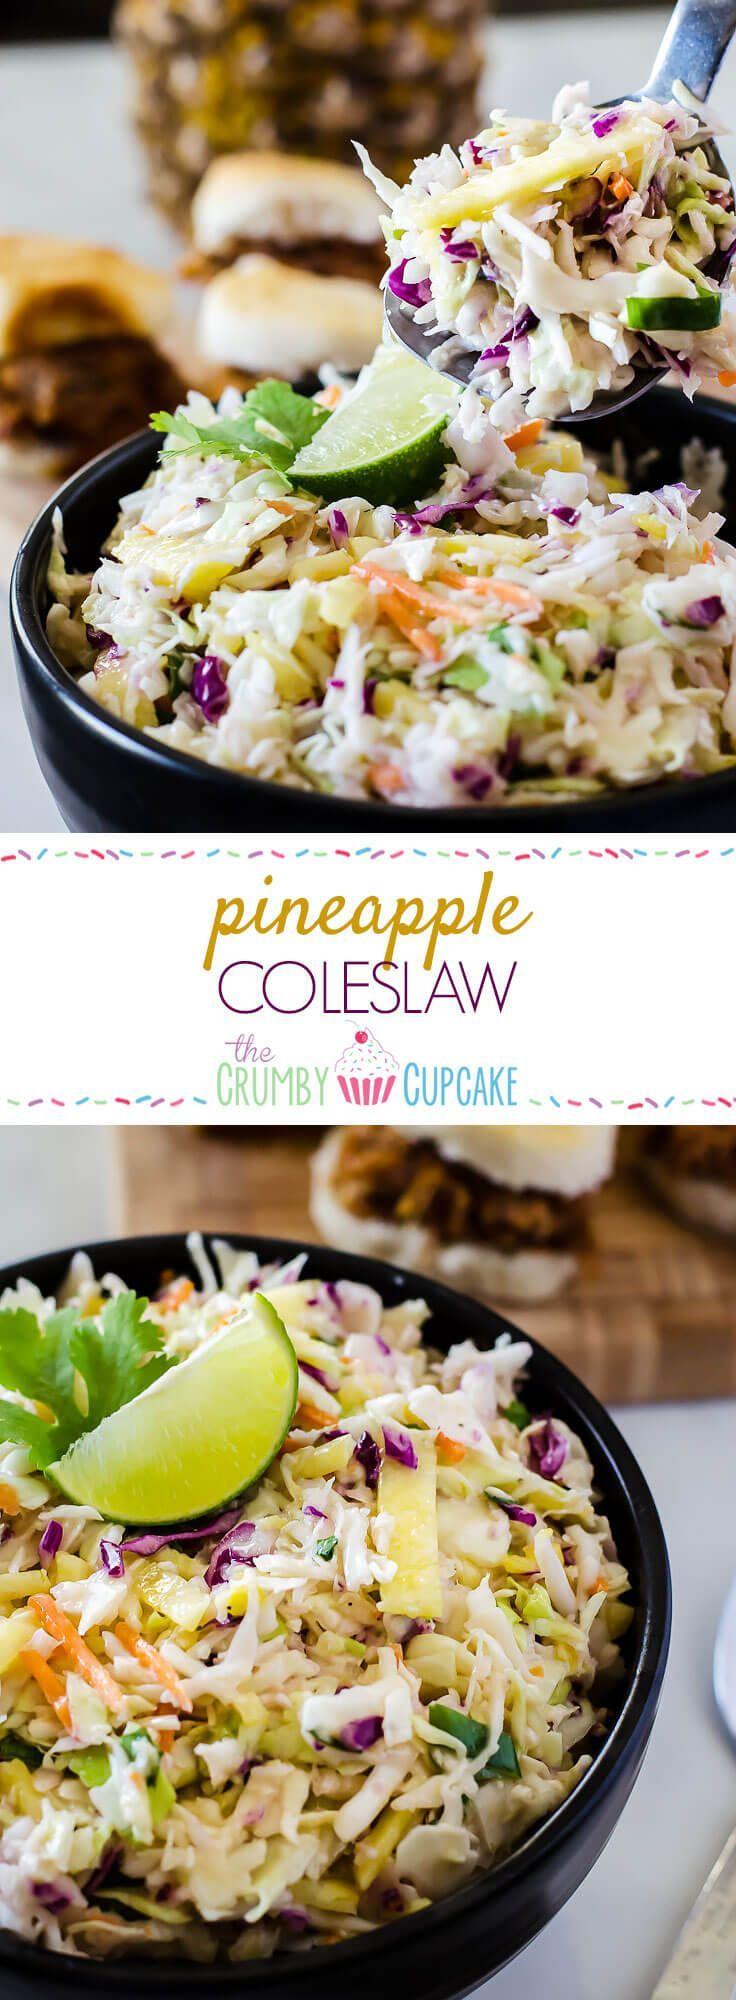 Bring the best dressed slaw to your next BBQ! This fast & easy Pineapple Coleslaw adds a little tropical flair to the otherwise ordinary side, making it a great topping for everything from sliders to hot dogs!